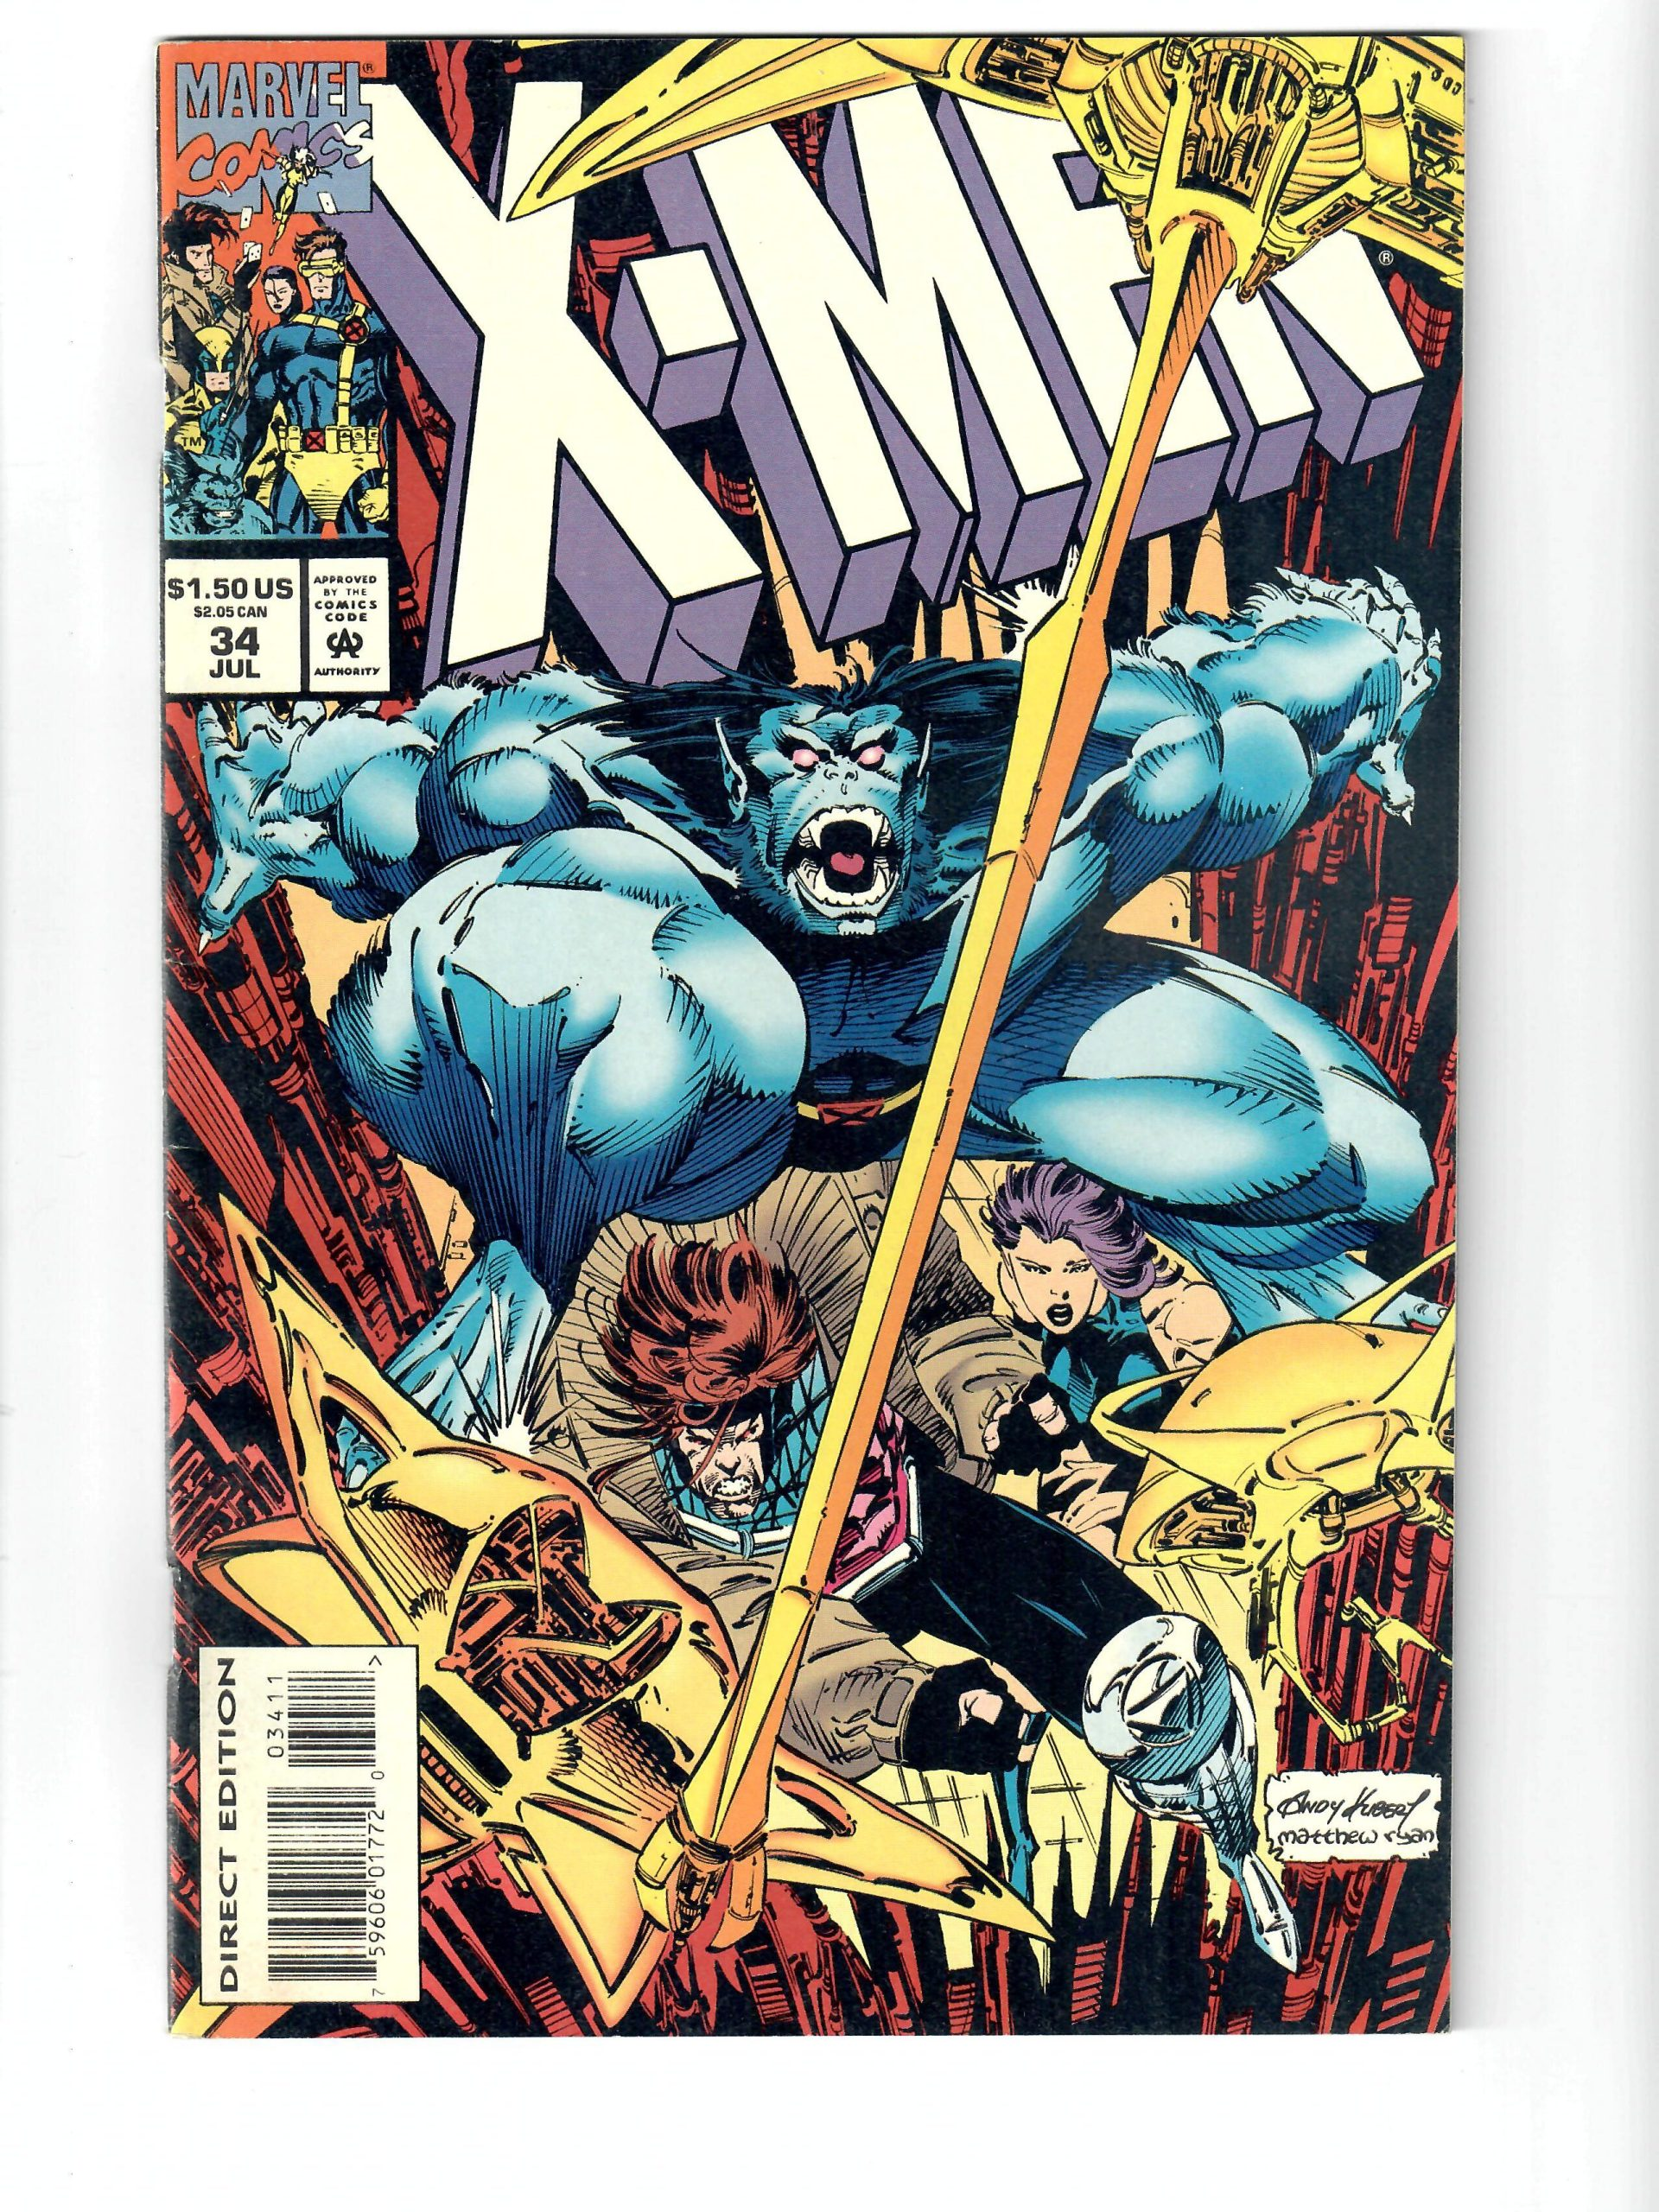 Marvel Comics X-Men #34 Jul 1994 Comic #141758-10